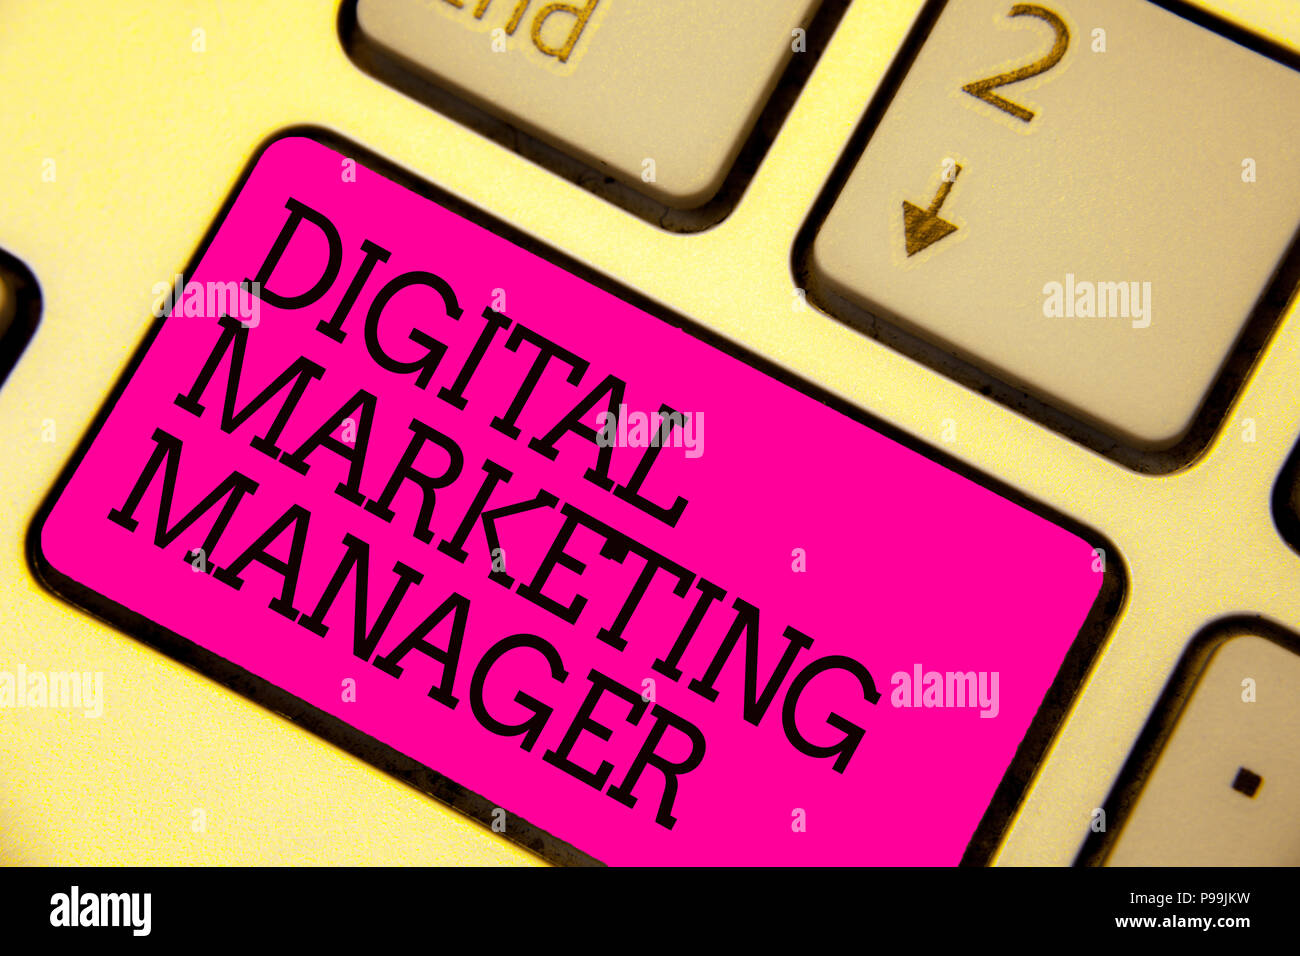 Word writing text Digital Marketing Manager. Business concept for optimized for posting in online boards or careers Keyboard pink key Intention create - Stock Image